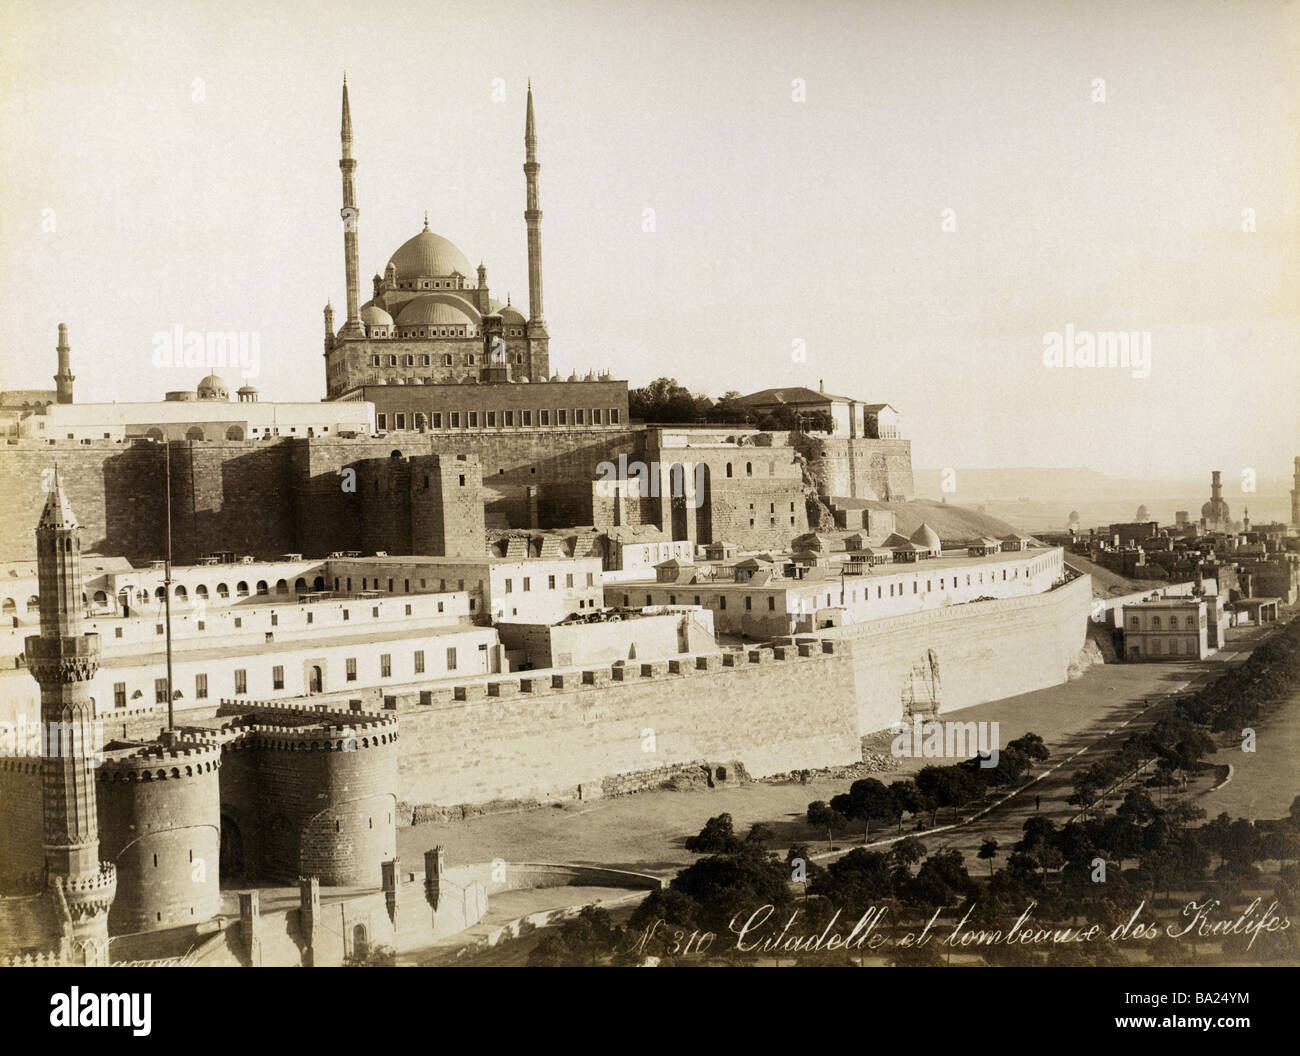 geography / travel, Egypt, Cairo, Citadel with Mosque of Mohamed Ali, Tombs of the Caliphs to the right, photograph - Stock Image